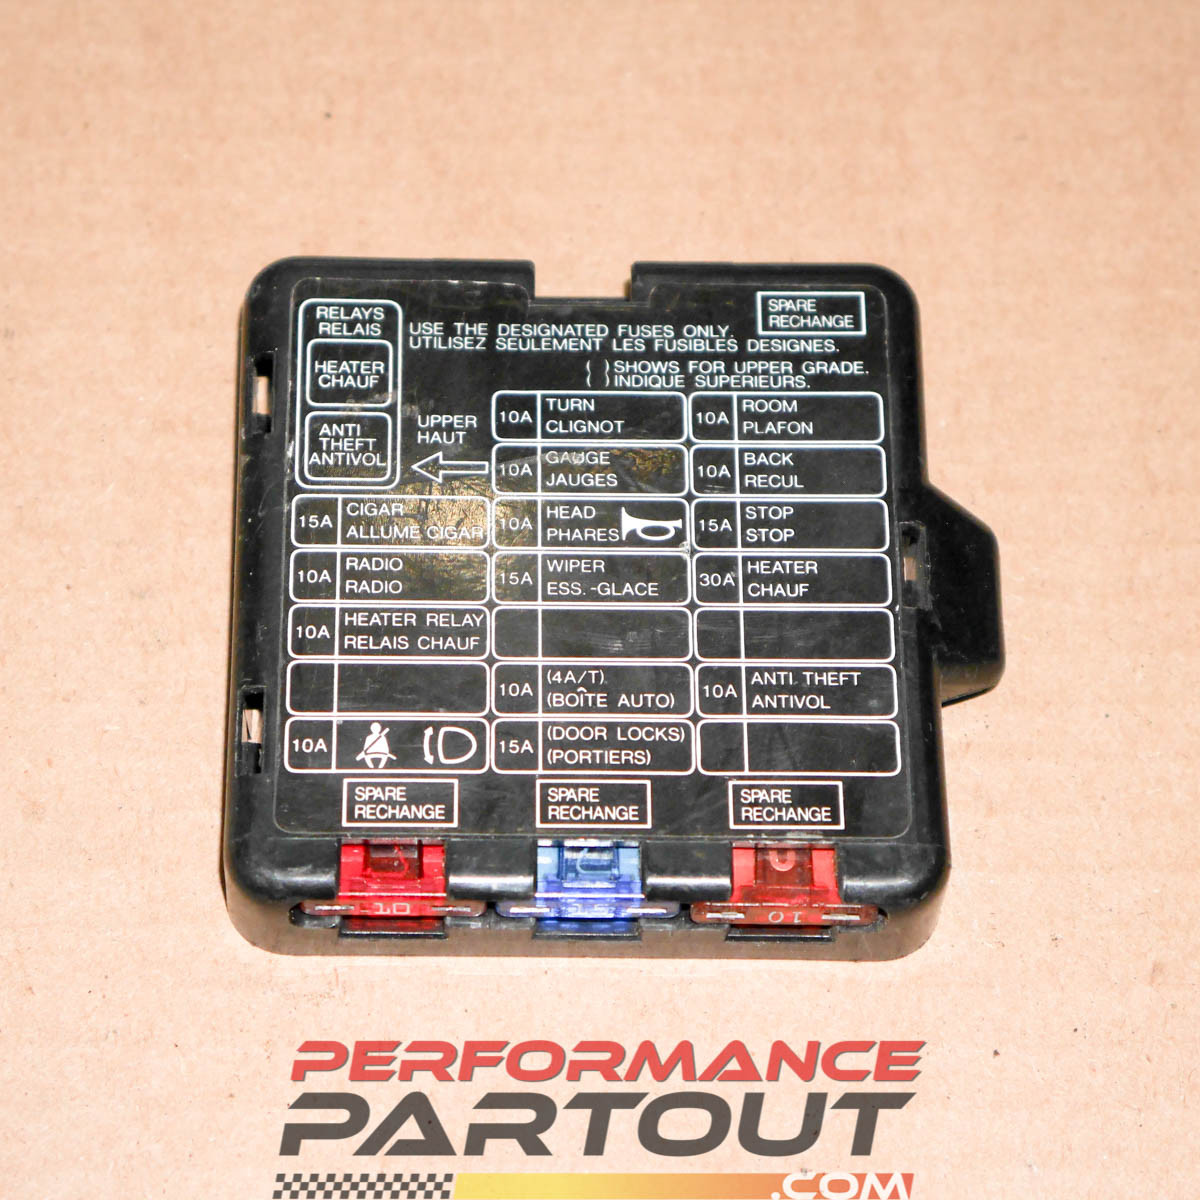 Dsm Fuse Box Cover 1 Wiring Diagram Electricity Basics 101 2002 Camaro Interior 90 94 Performance Partout Rh Performancepartout Com